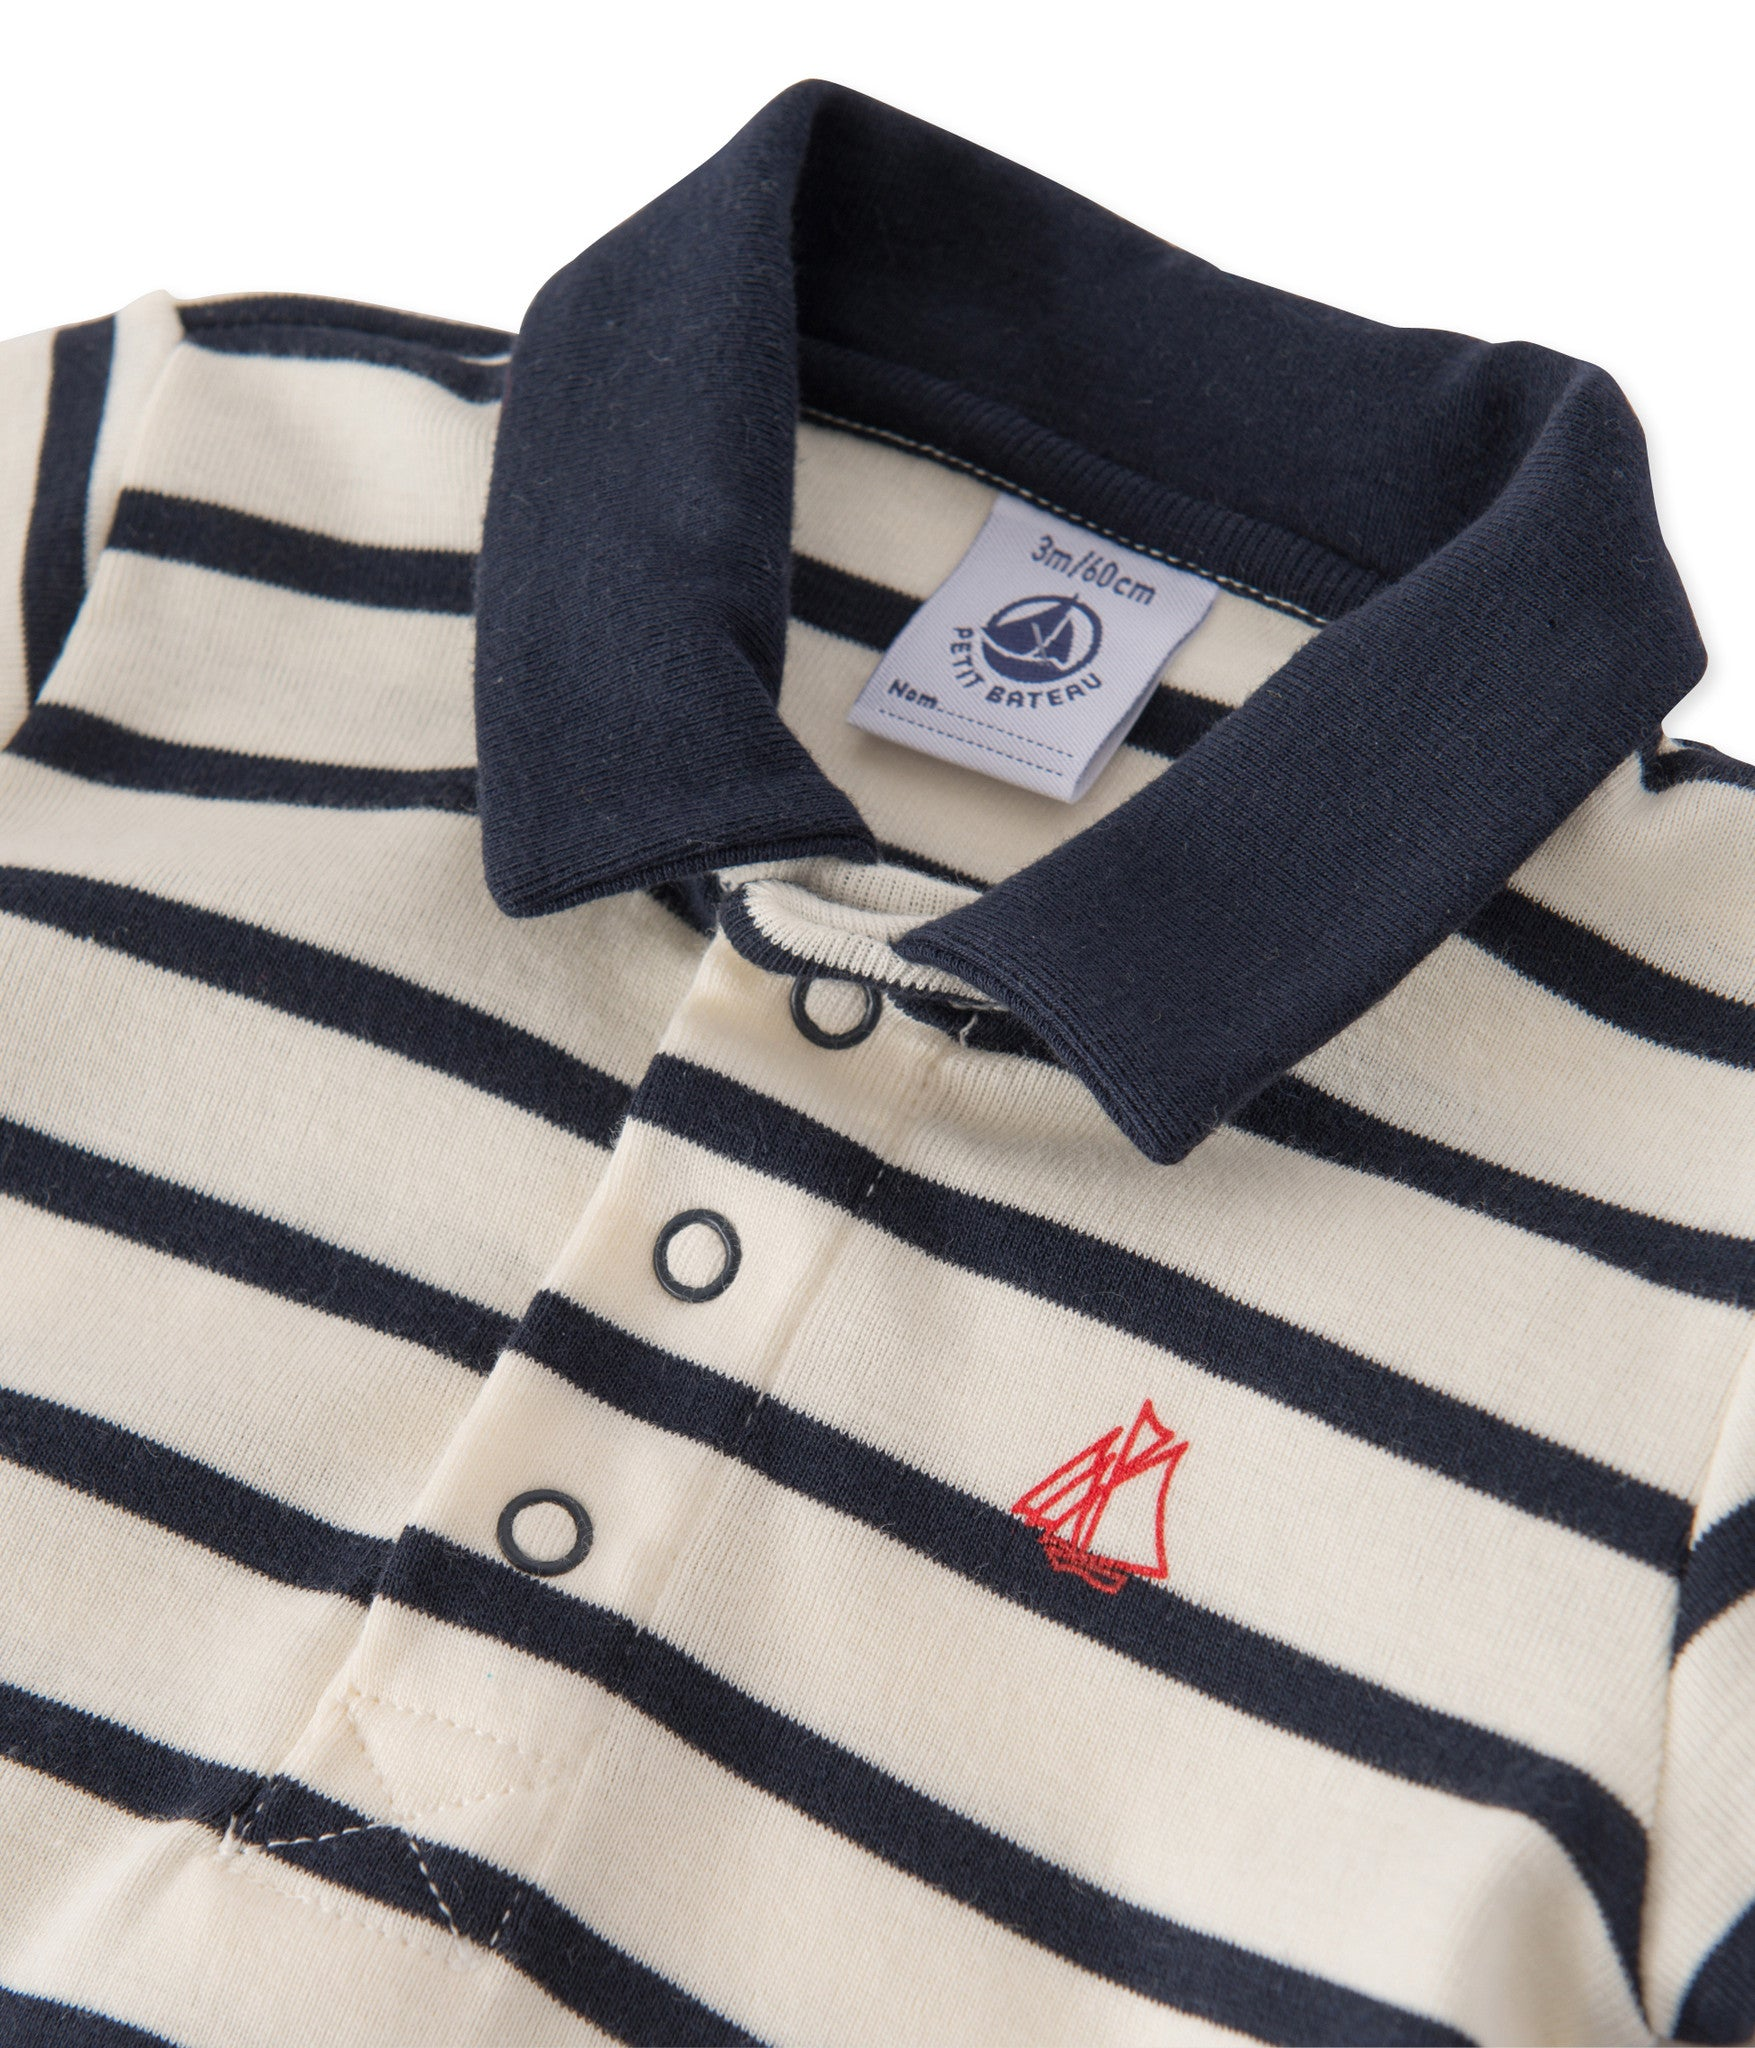 Petit Bateau - T-shirt, Baby Polo MC - Coquille beige / Smoking blue